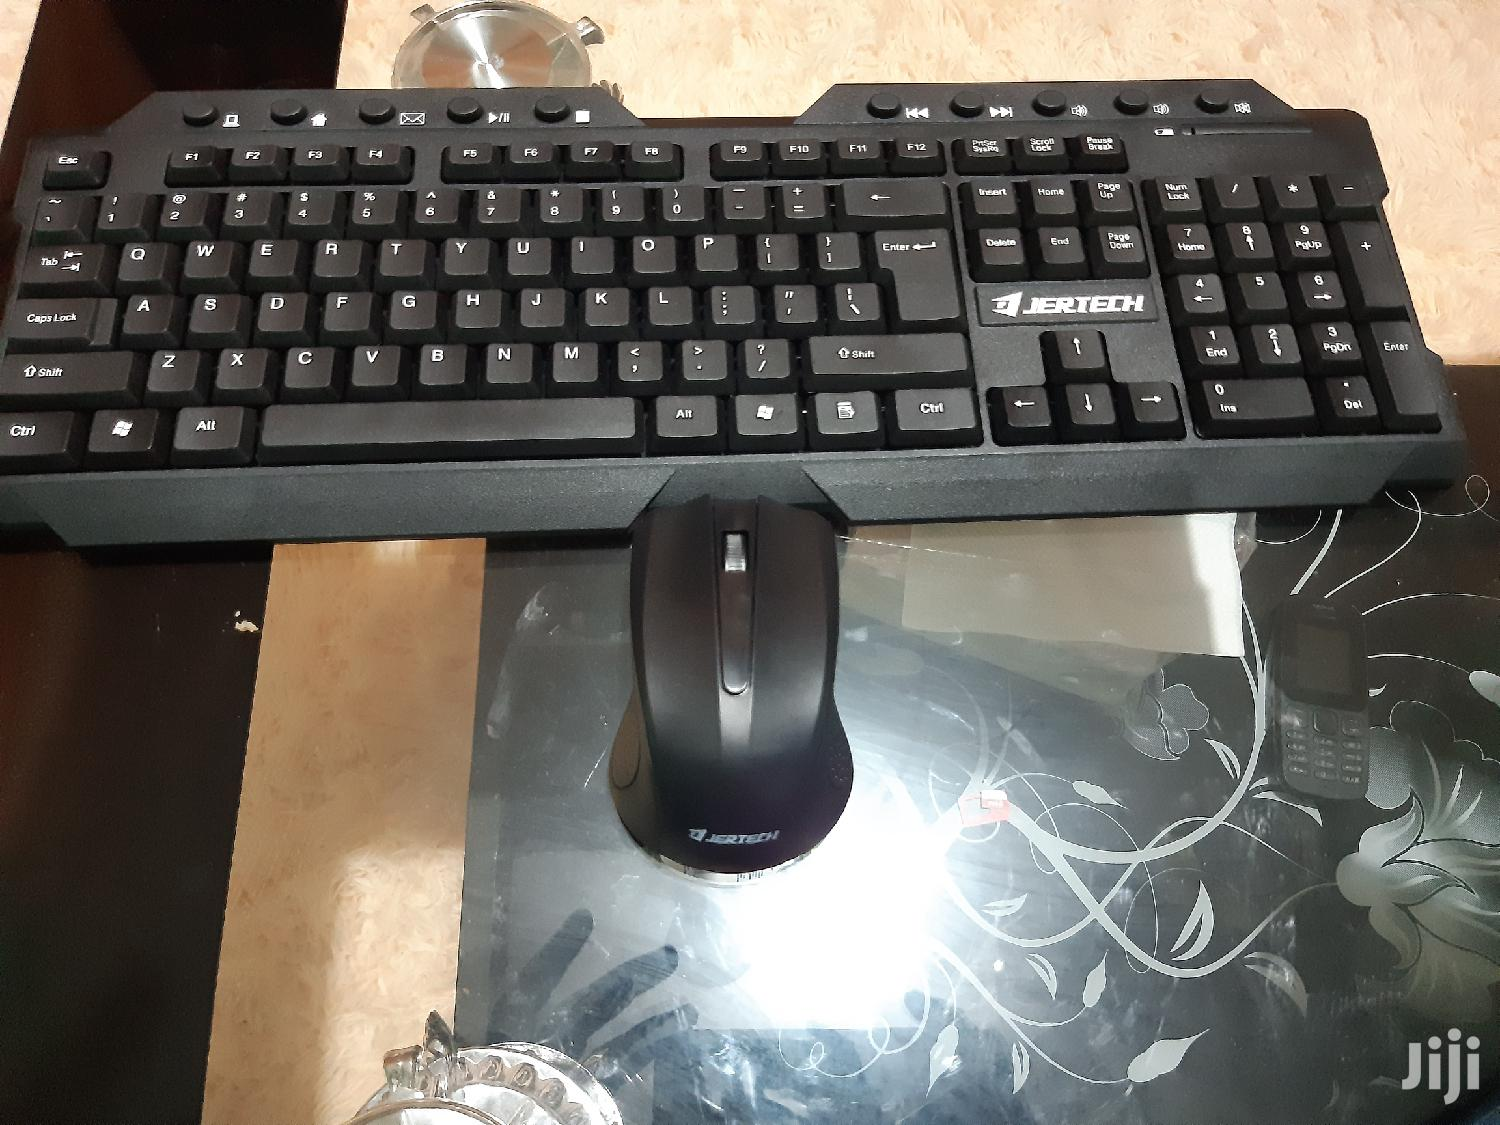 Jertech Wireless Gaming Keyboard Plus Mouse